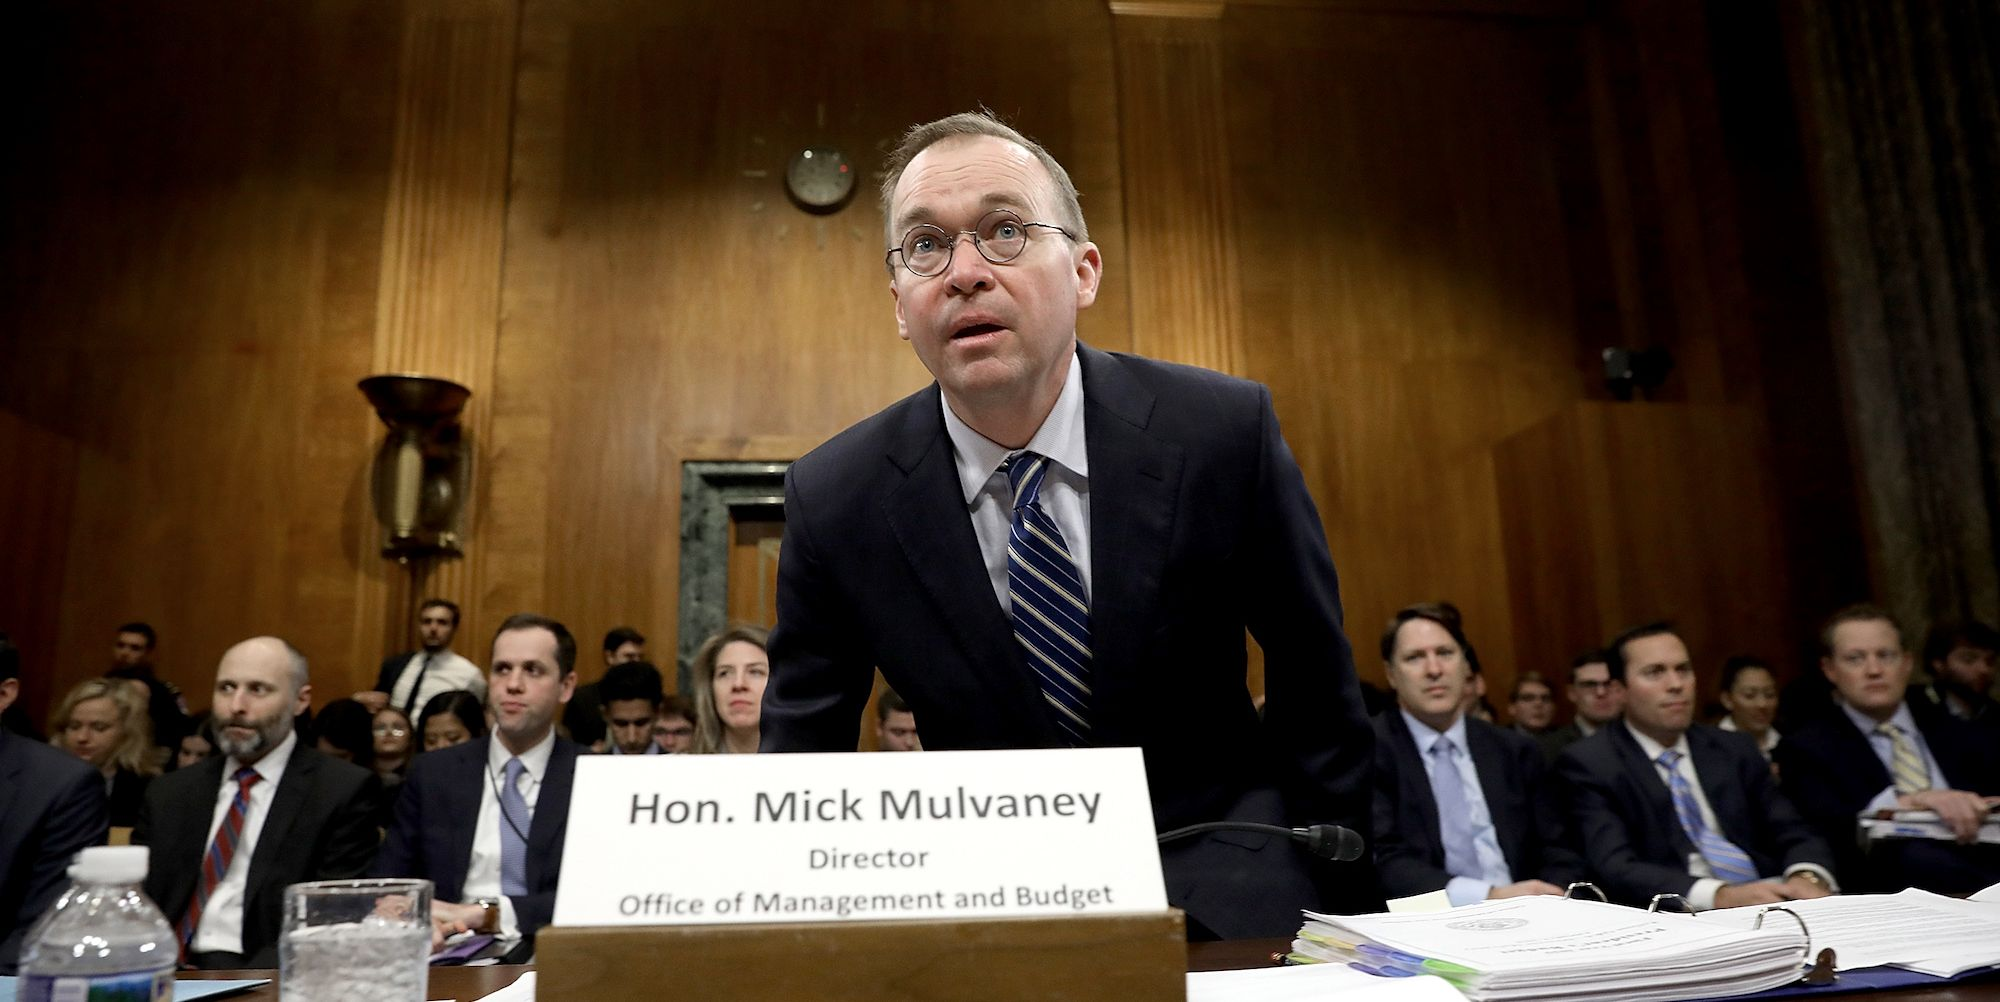 Mick Mulvaney's tenure at the Consumer Financial Protection Bureau proves a crooked bureaucrat can make any law a dead-letter.